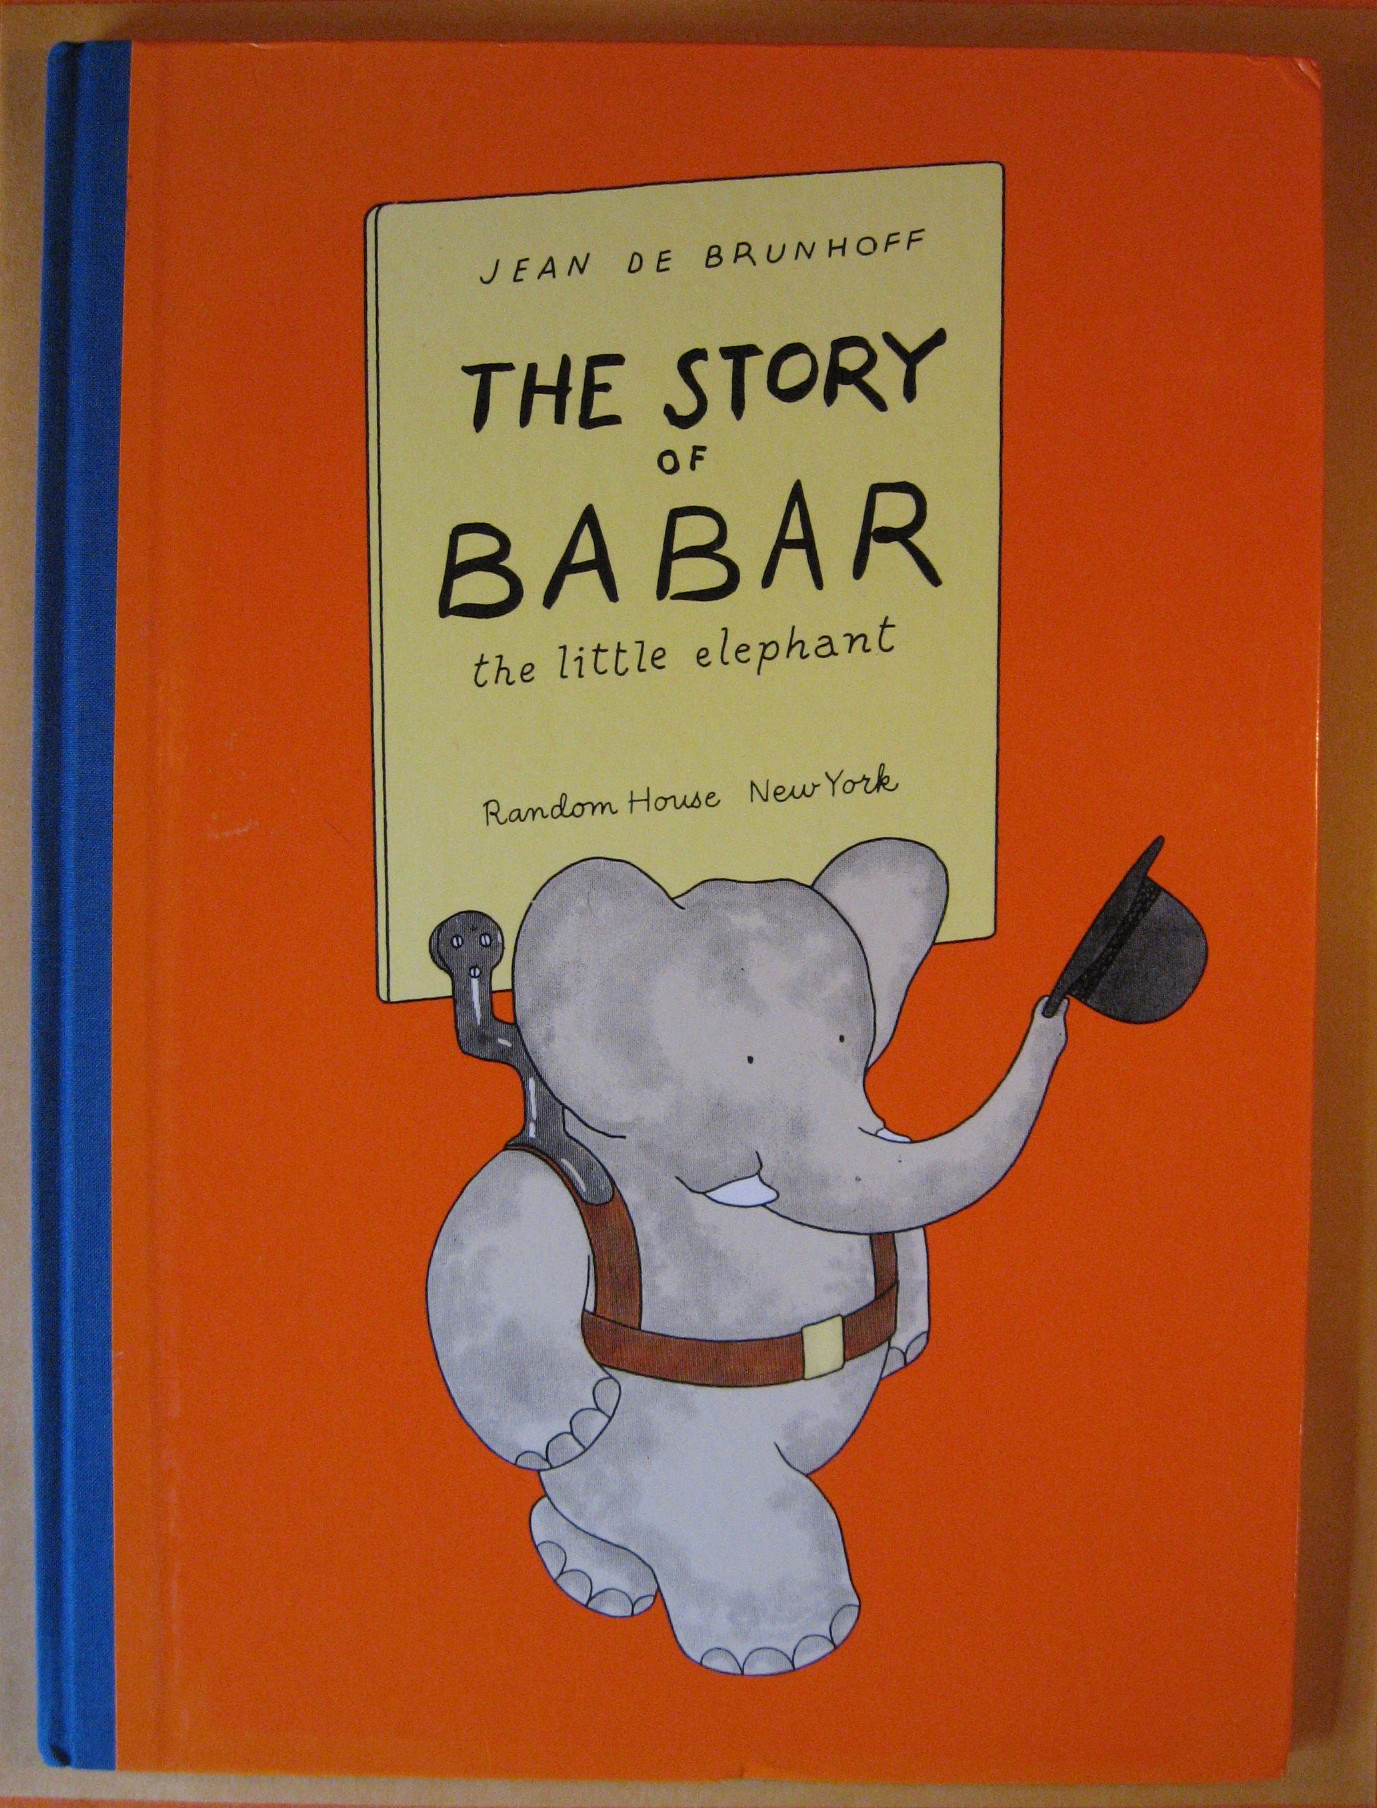 The Story of Babar the Little Elephant, de Brunhoff, Jean